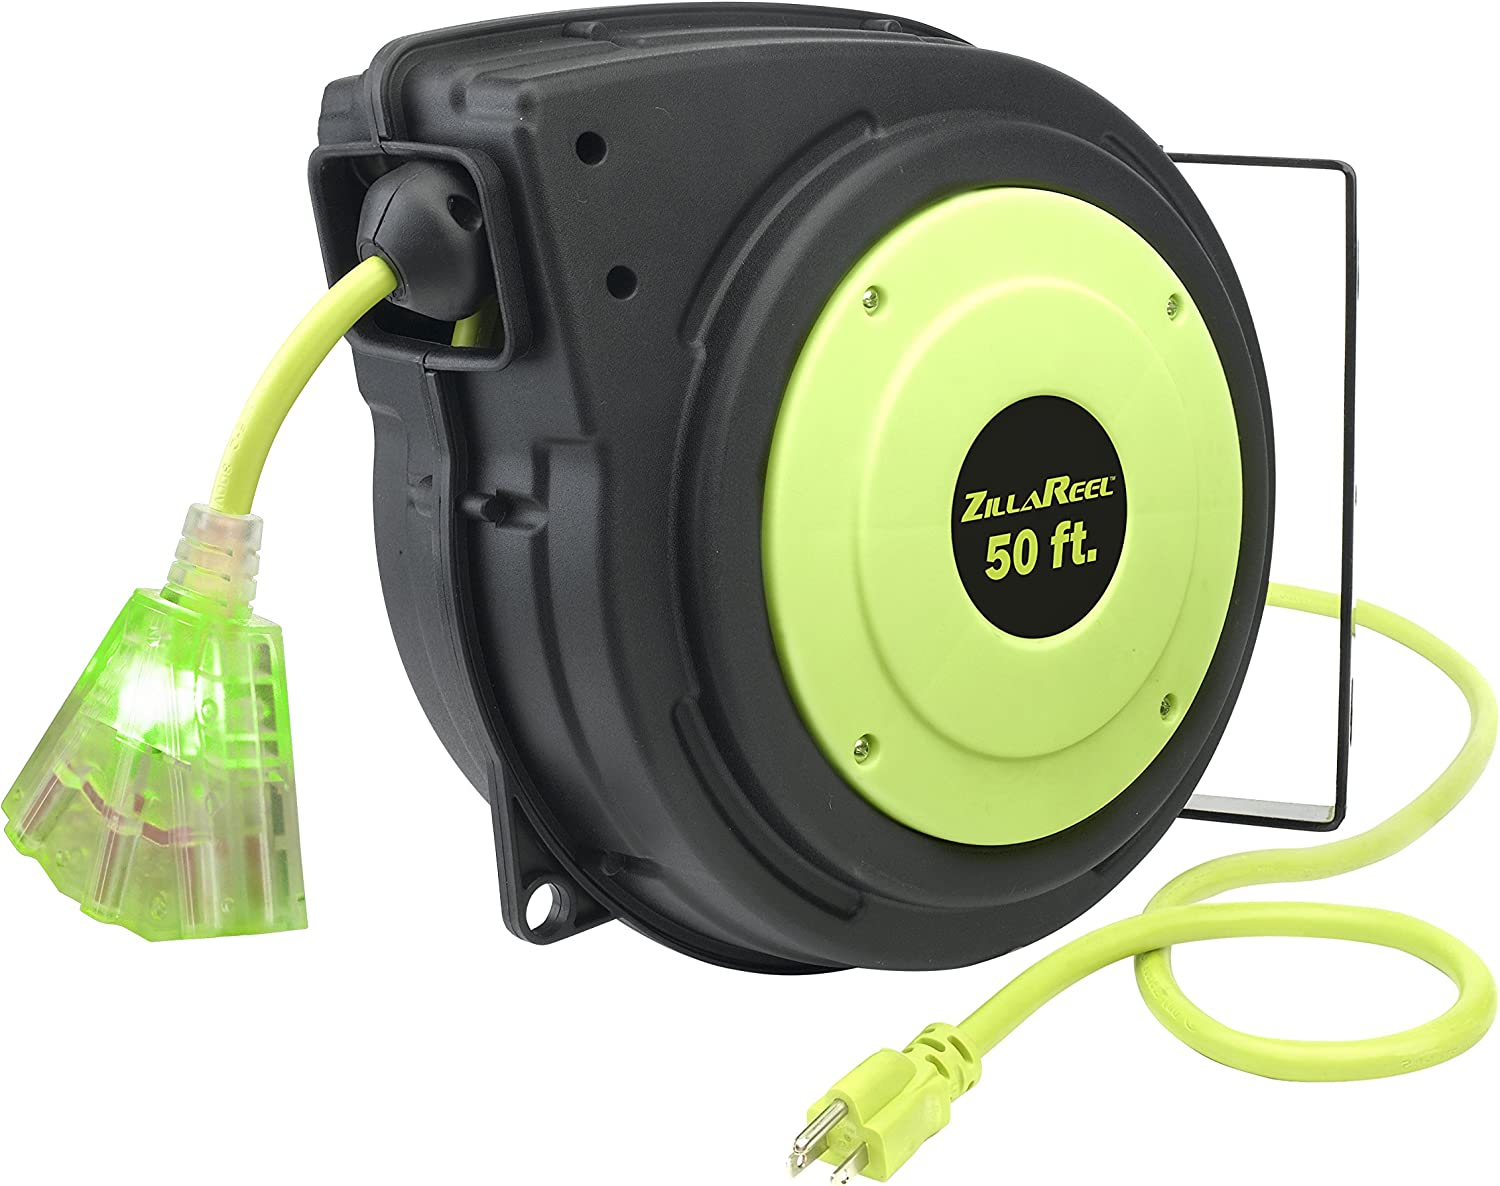 Flexzilla E8140503 ZillaReel Retractable, 14-3 AWG SJTOW, 50', Grounded  Triple Tap Outlet Electric Cord Reel - - Amazon.com